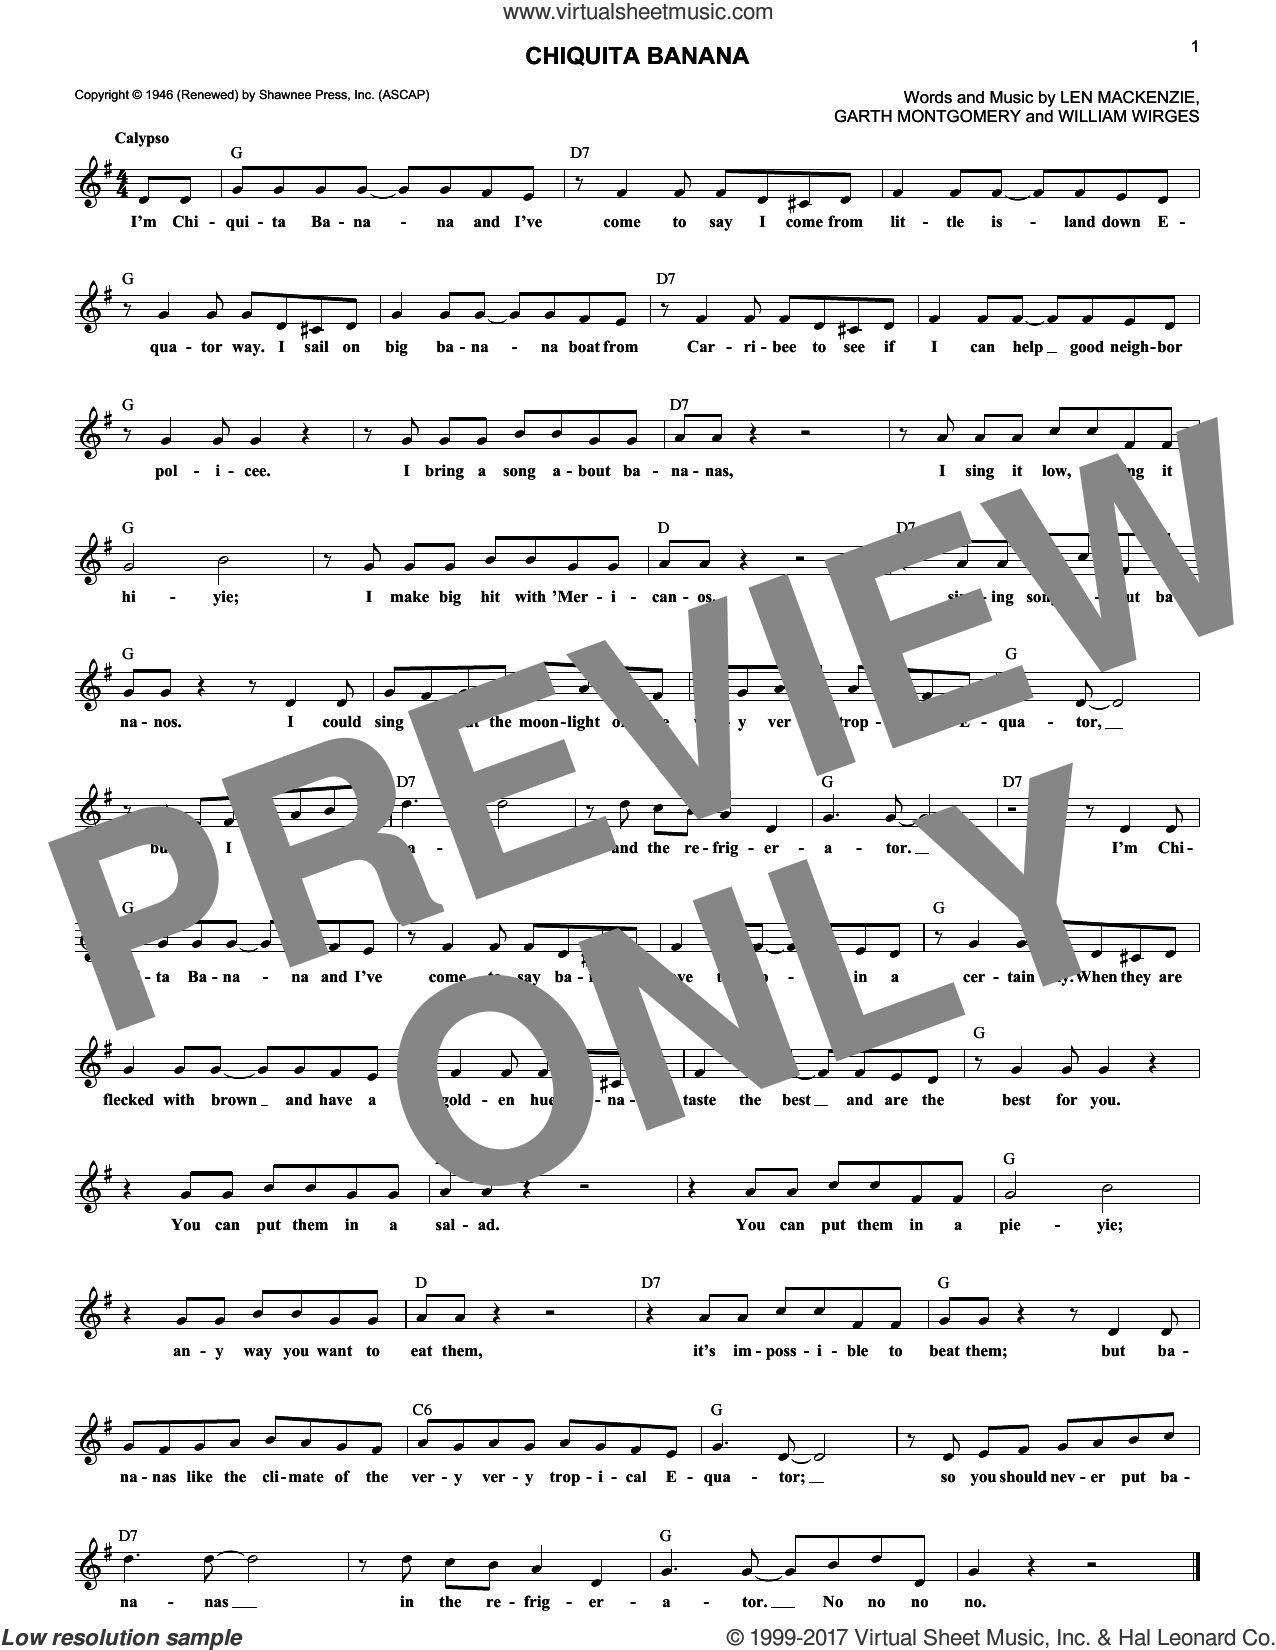 Chiquita Banana sheet music for voice and other instruments (fake book) by Len Mackenzie, Garth Montgomery and William Wirges, intermediate skill level